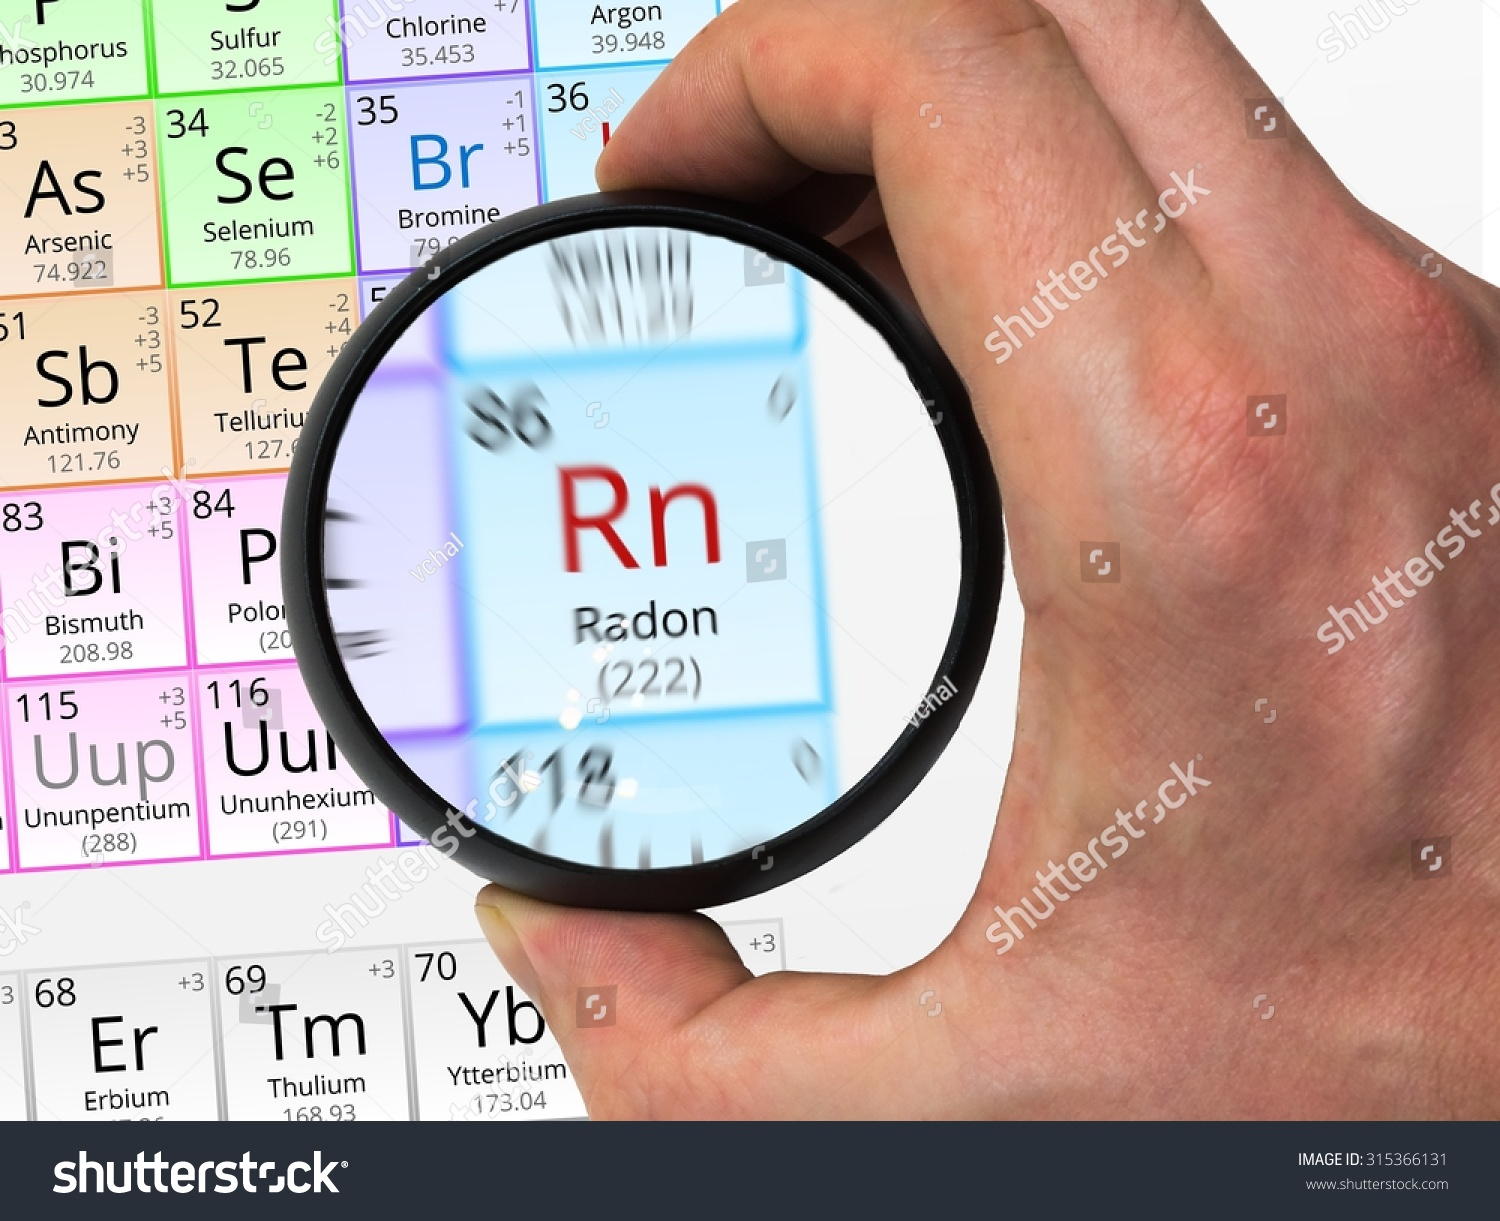 Radon symbol rn element periodic table stock photo 315366131 radon symbol rn element of the periodic table zoomed with magnifying glass gamestrikefo Image collections